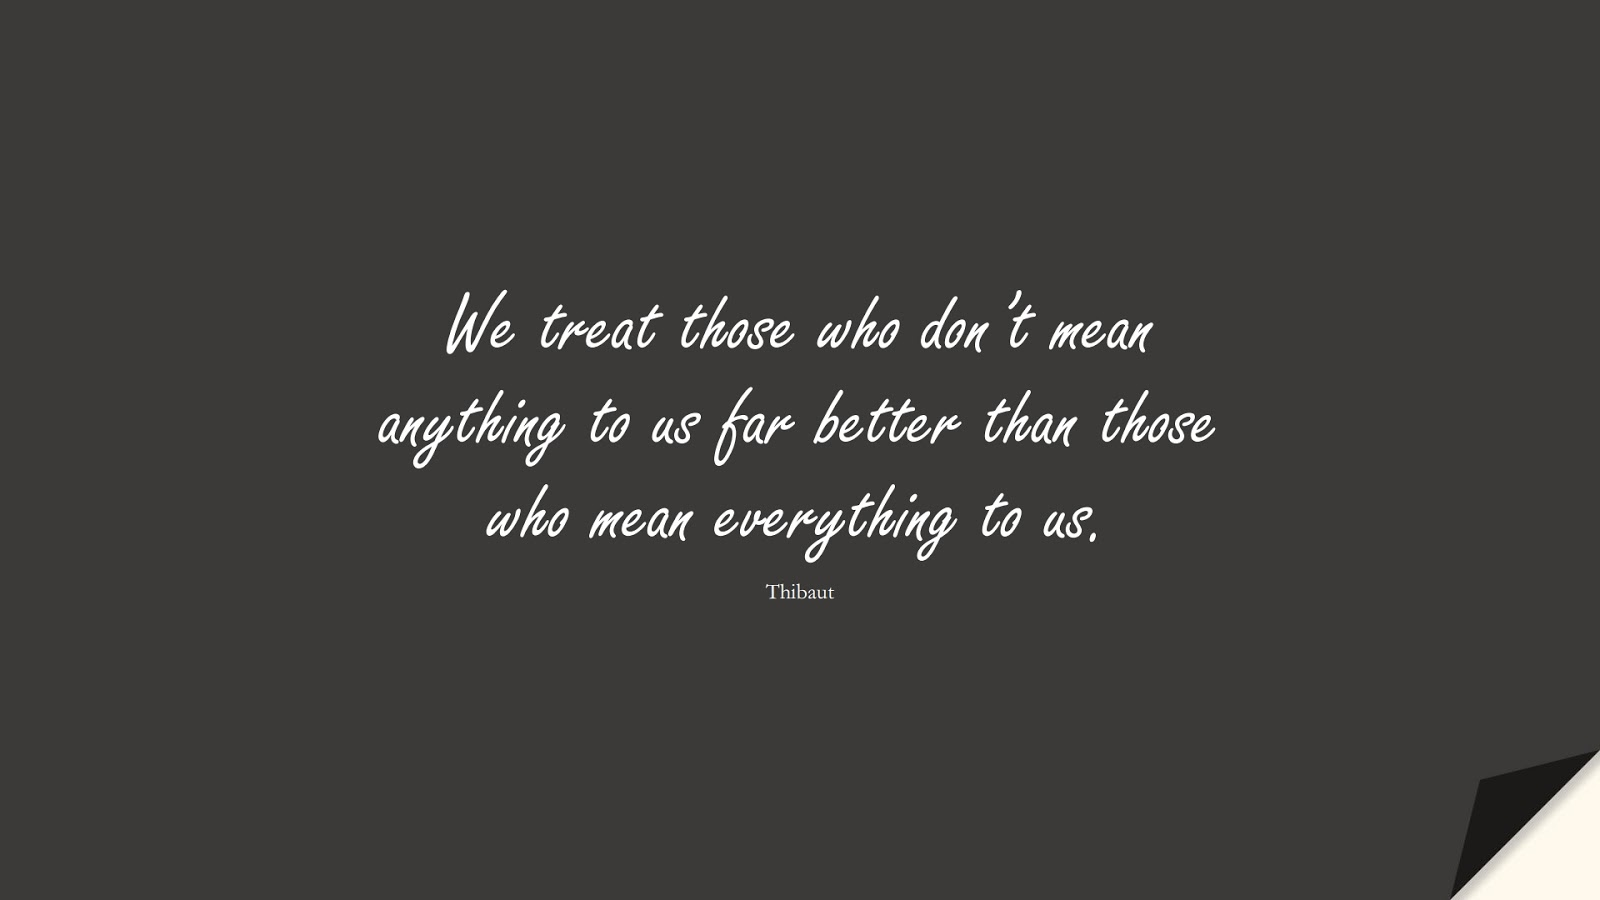 We treat those who don't mean anything to us far better than those who mean everything to us. (Thibaut);  #RelationshipQuotes